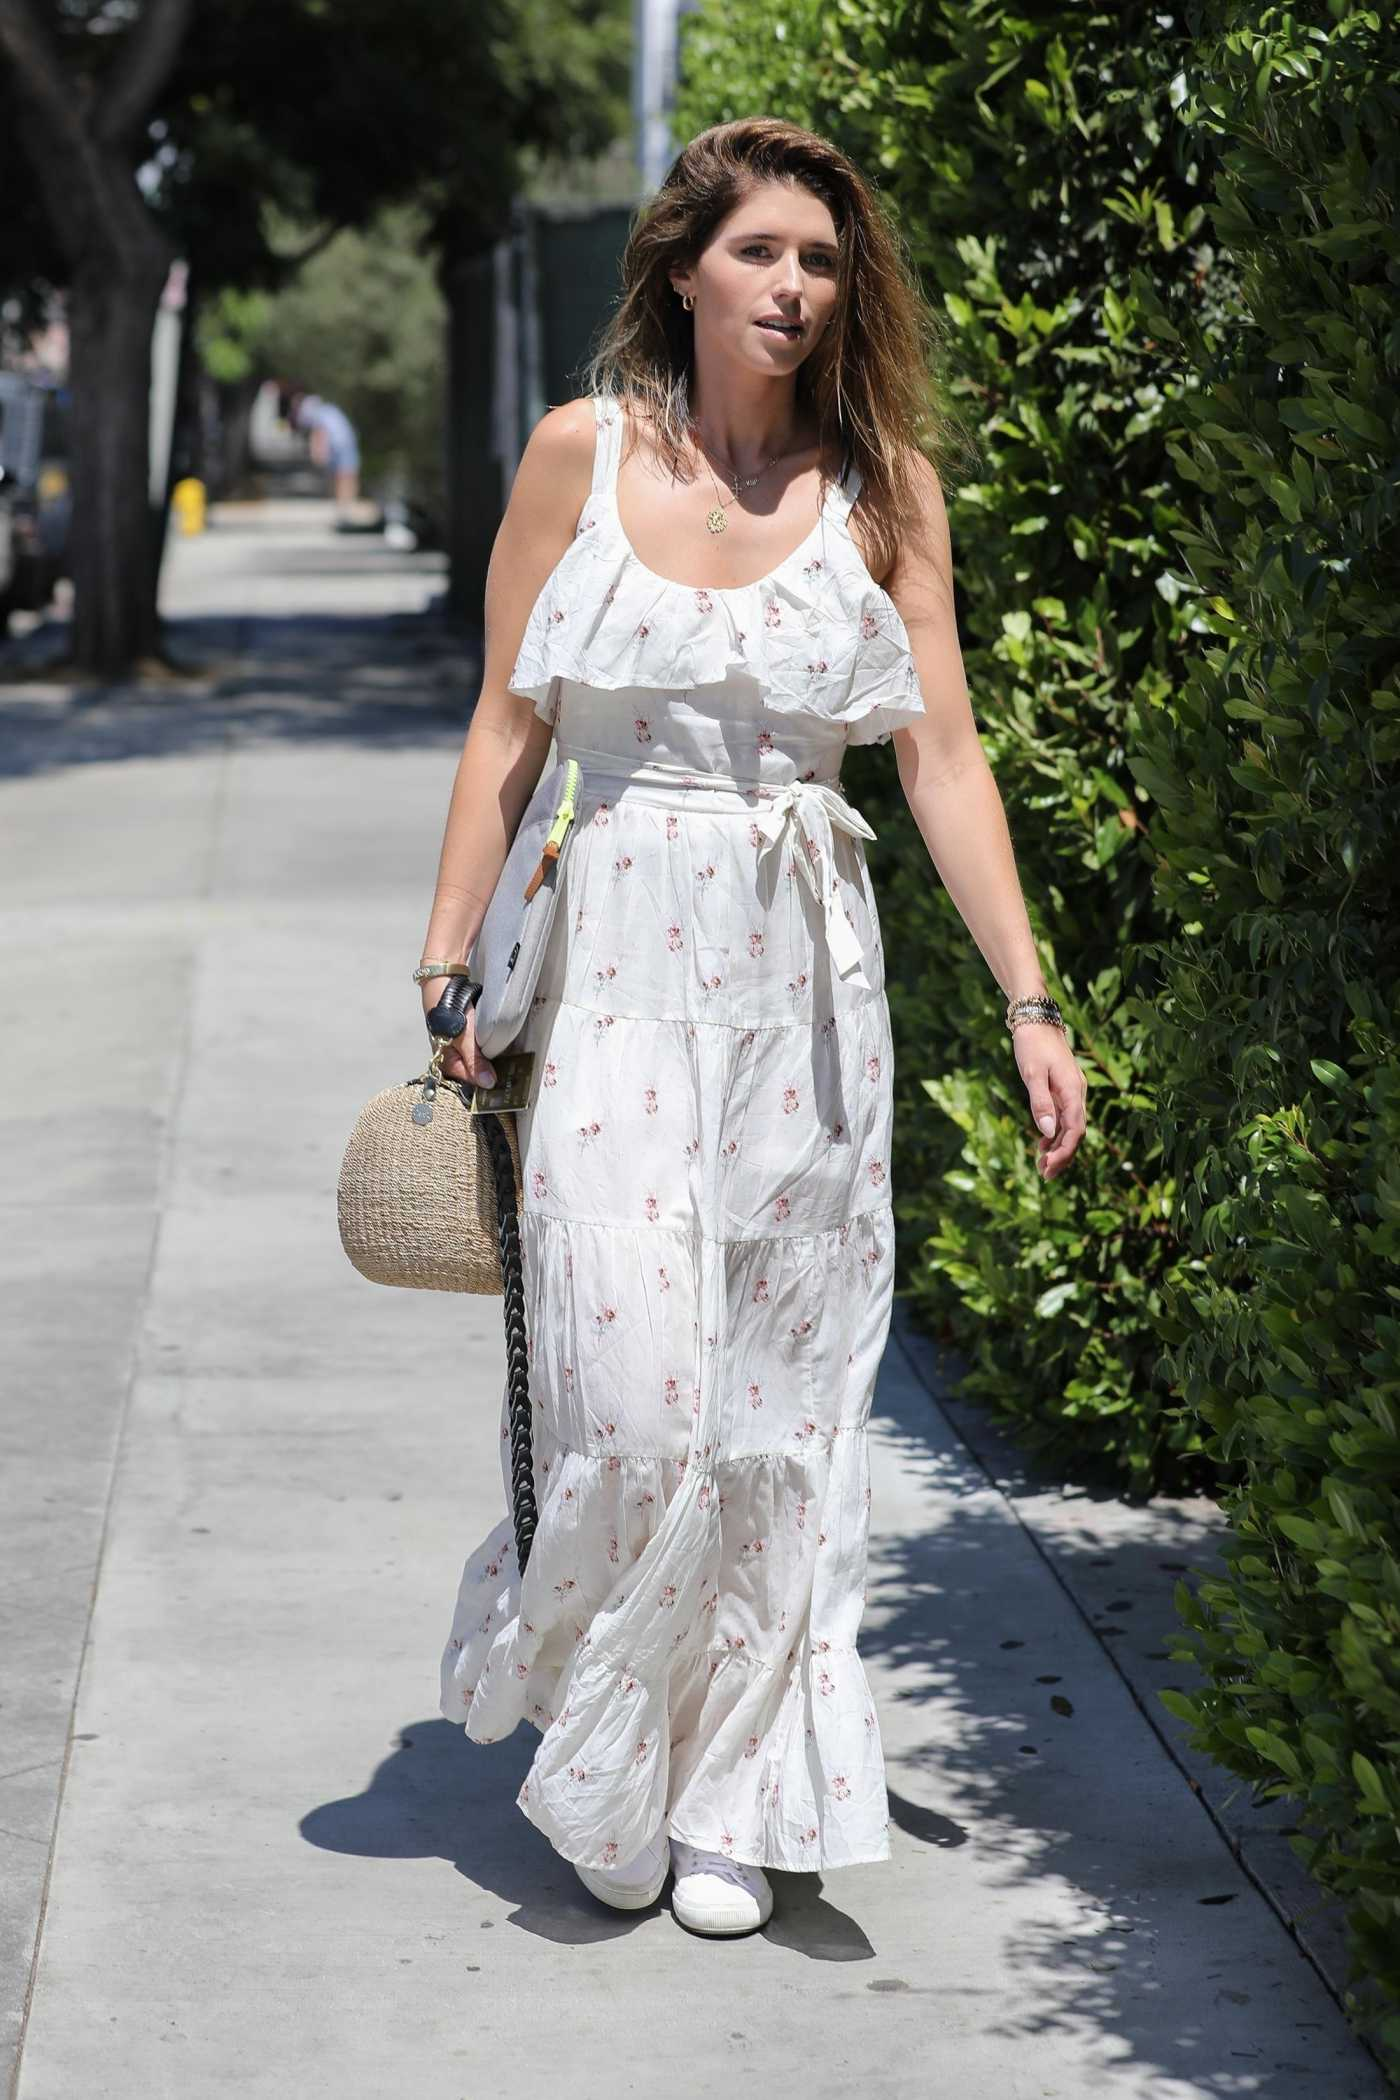 Katherine Schwarzenegger in a White Floral Dress Was Seen Out in Los Angeles 08/29/2019